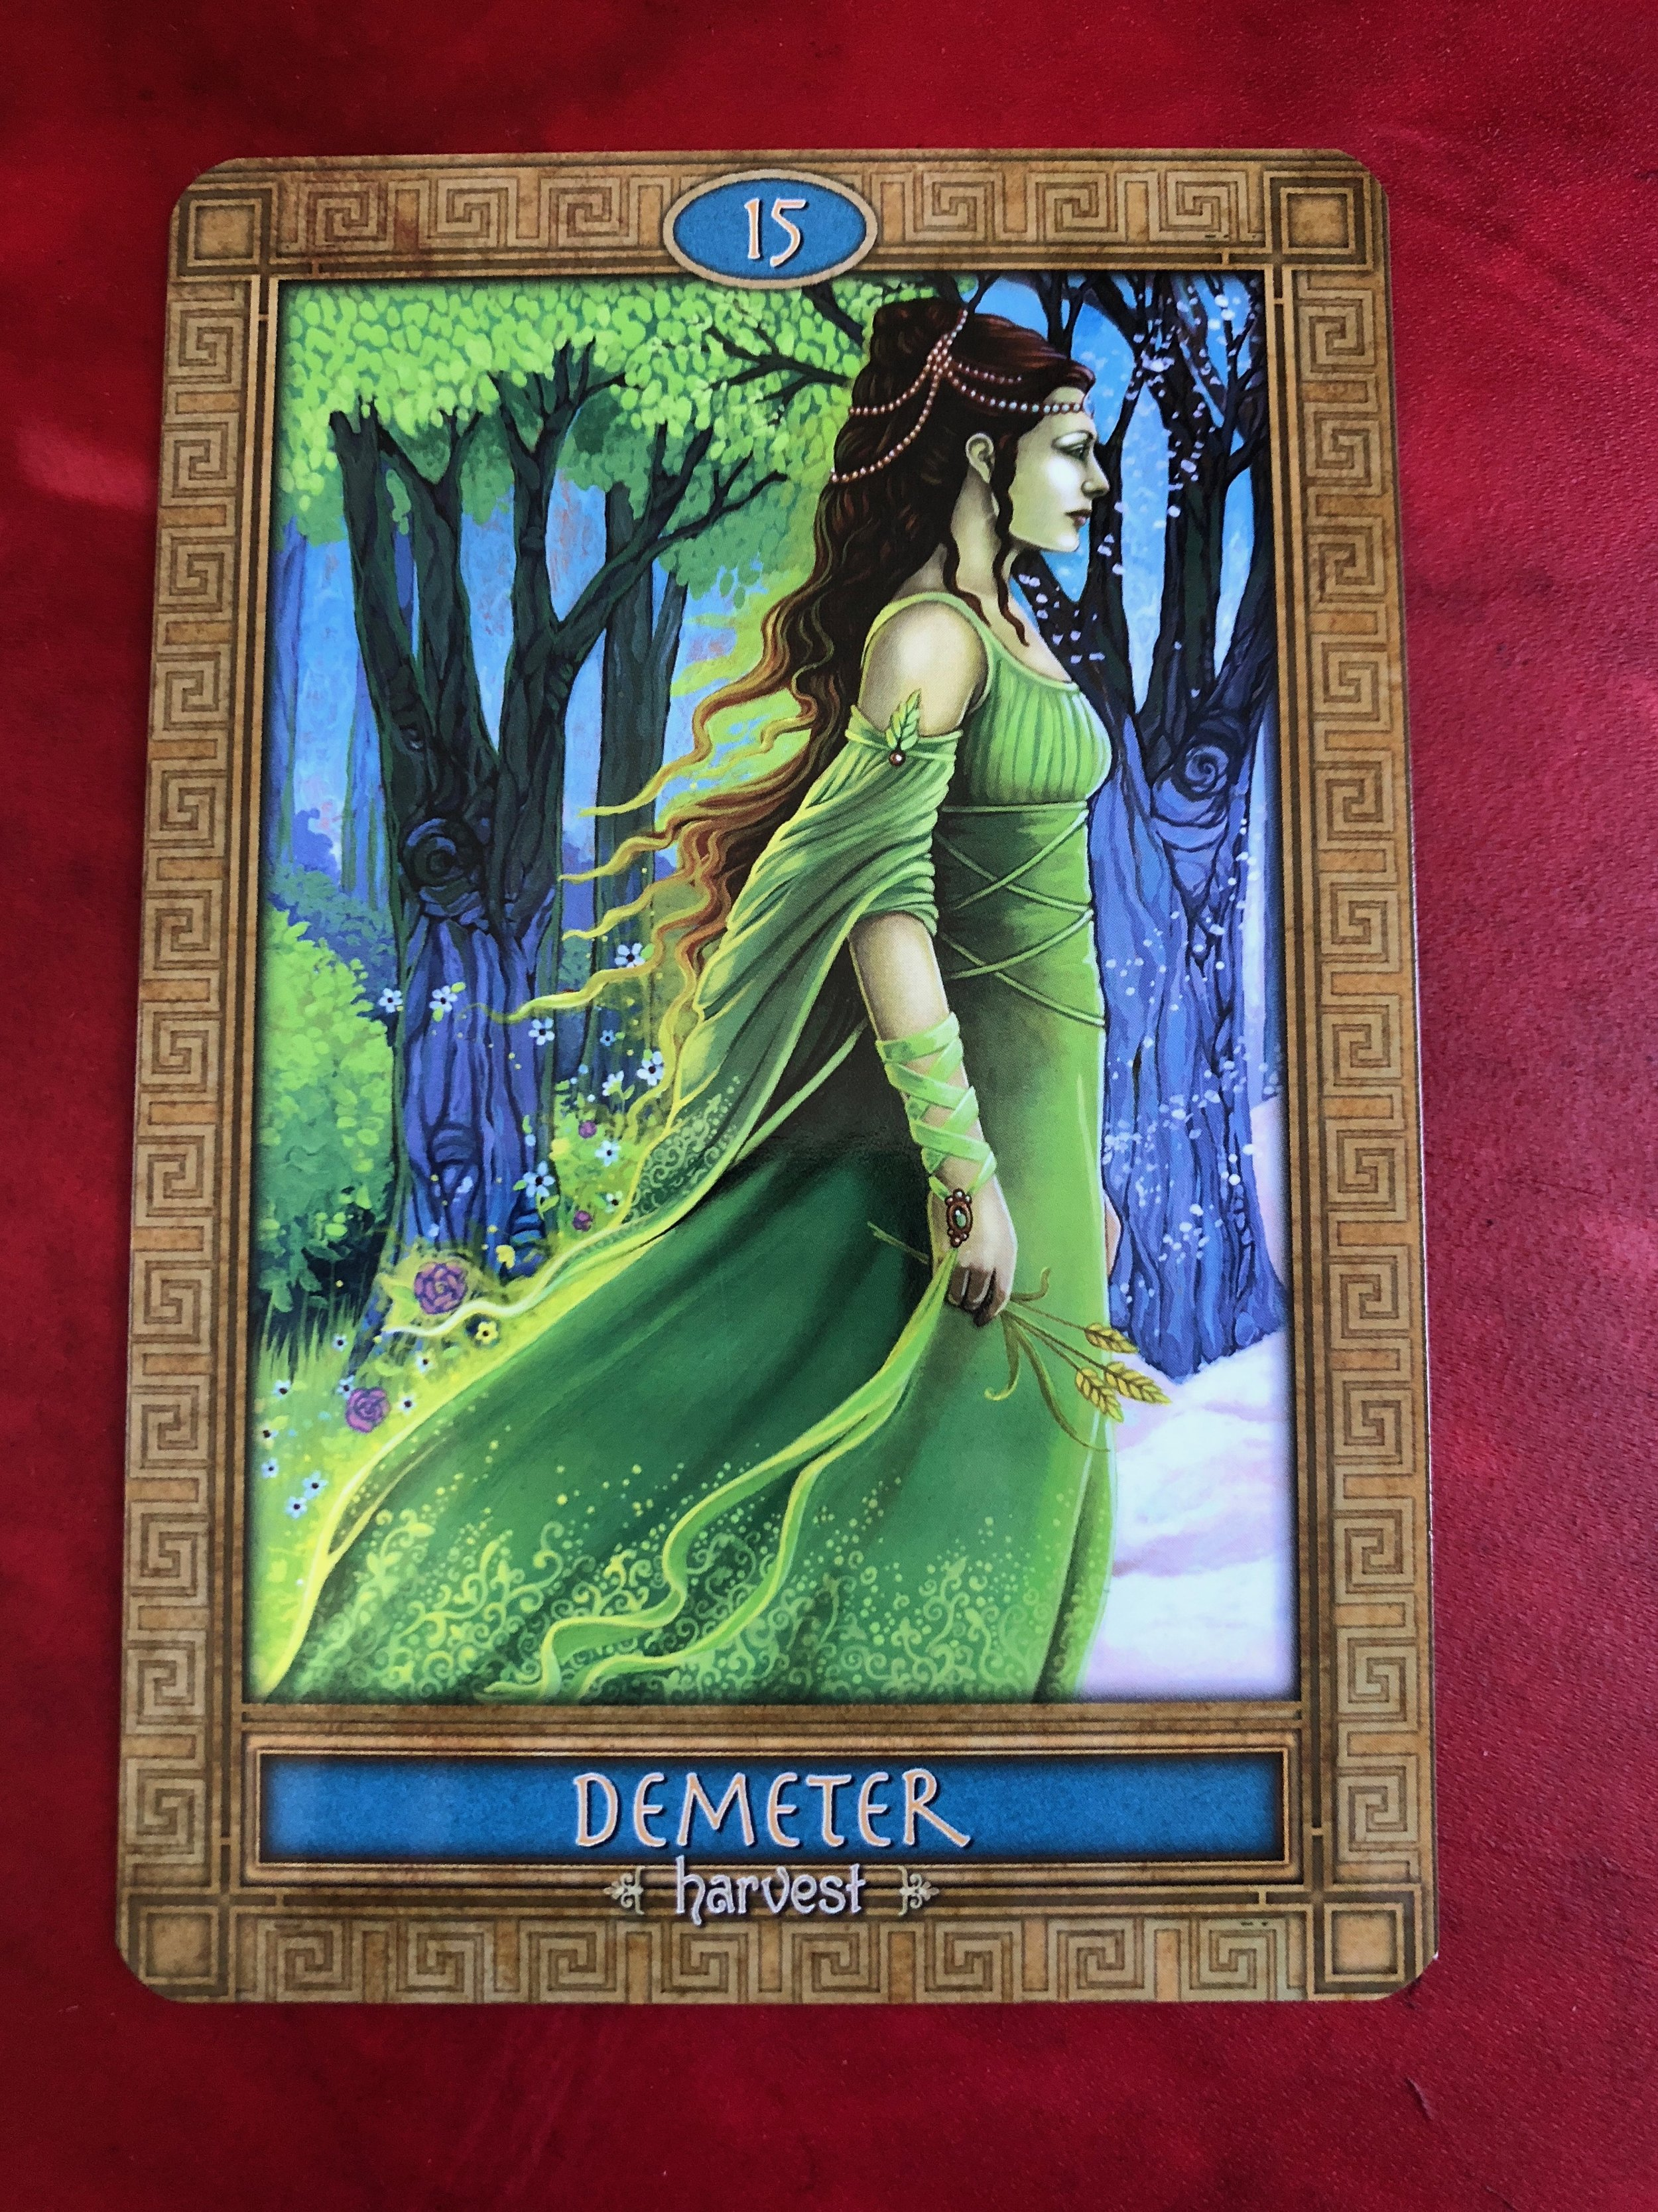 Oracle Card - Demeter from the Mythic Oracle by Carisa Mellado    Normal.dotm  0  0  1  97  556  MilleFeille Photography  4  1  682  12.0             0  false      18 pt  18 pt  0  0    false  false  false                       /* Style Definitions */ table.MsoNormalTable {mso-style-name: